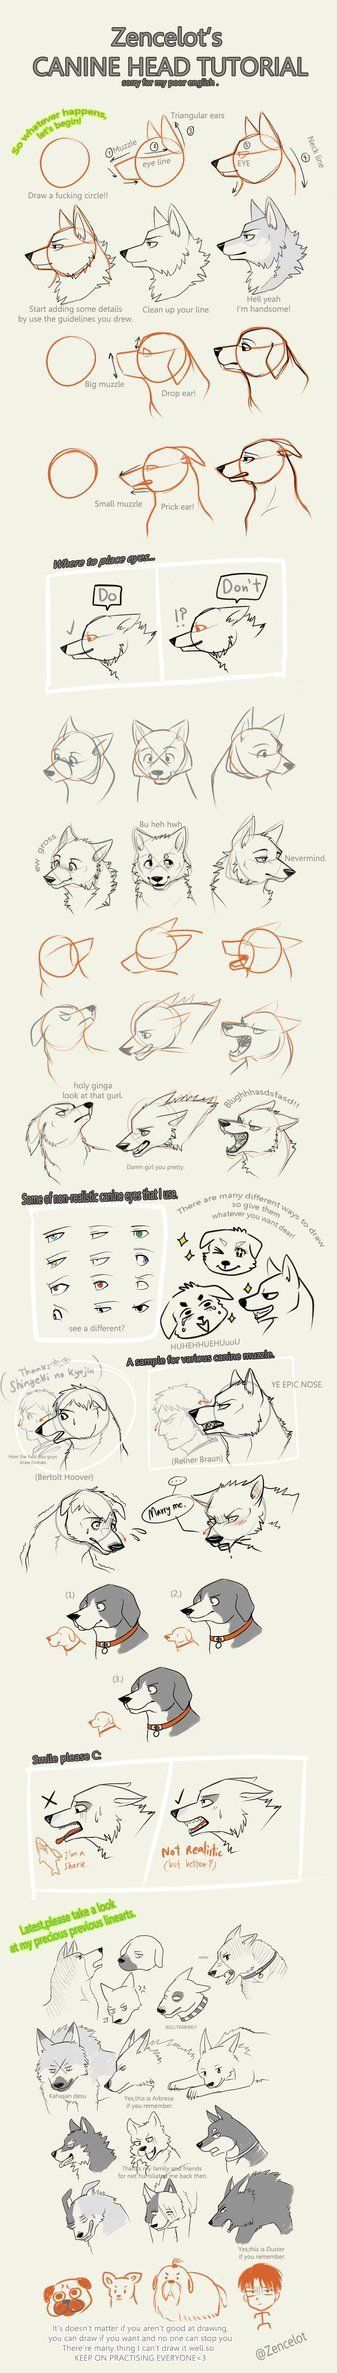 Zencelot's canine Head Tutorial